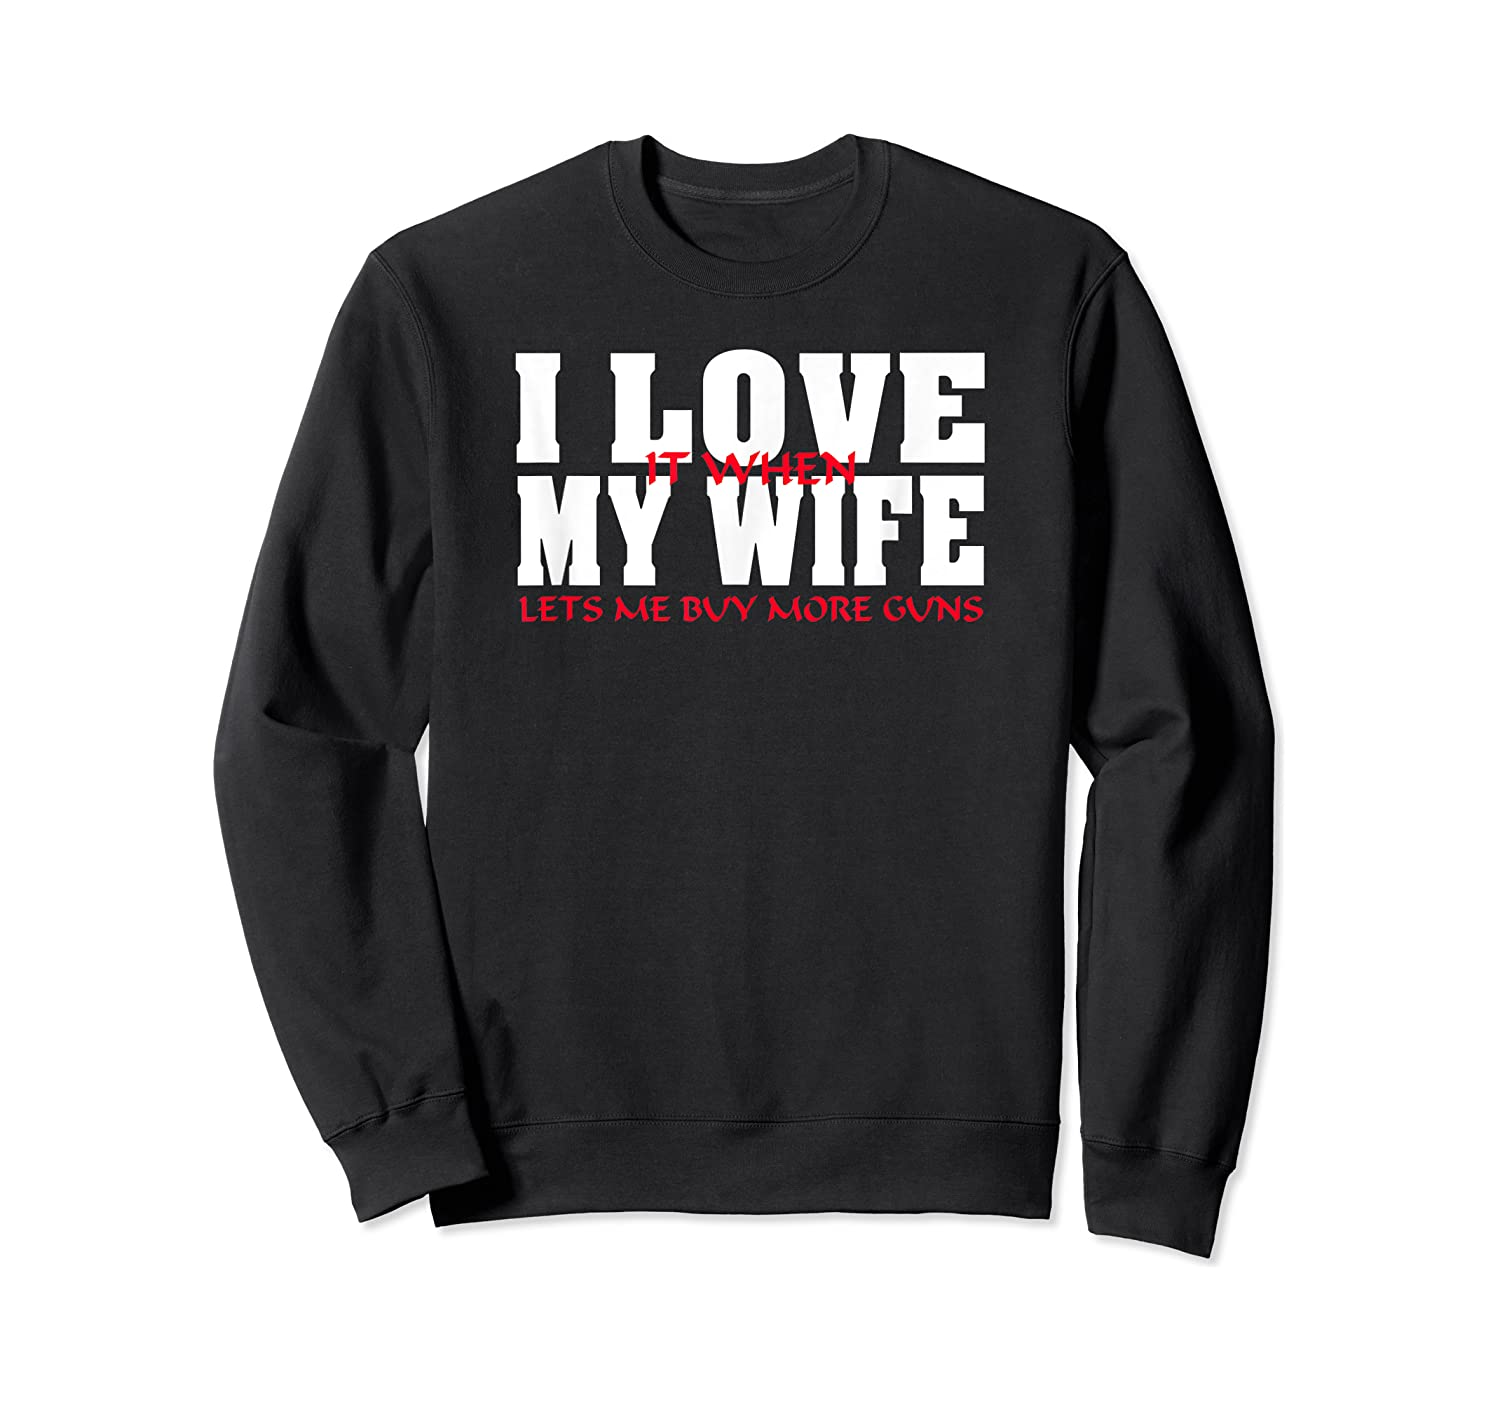 I Love It When My Wife Lets Me Buy More Guns Funny Husband T-shirt Crewneck Sweater